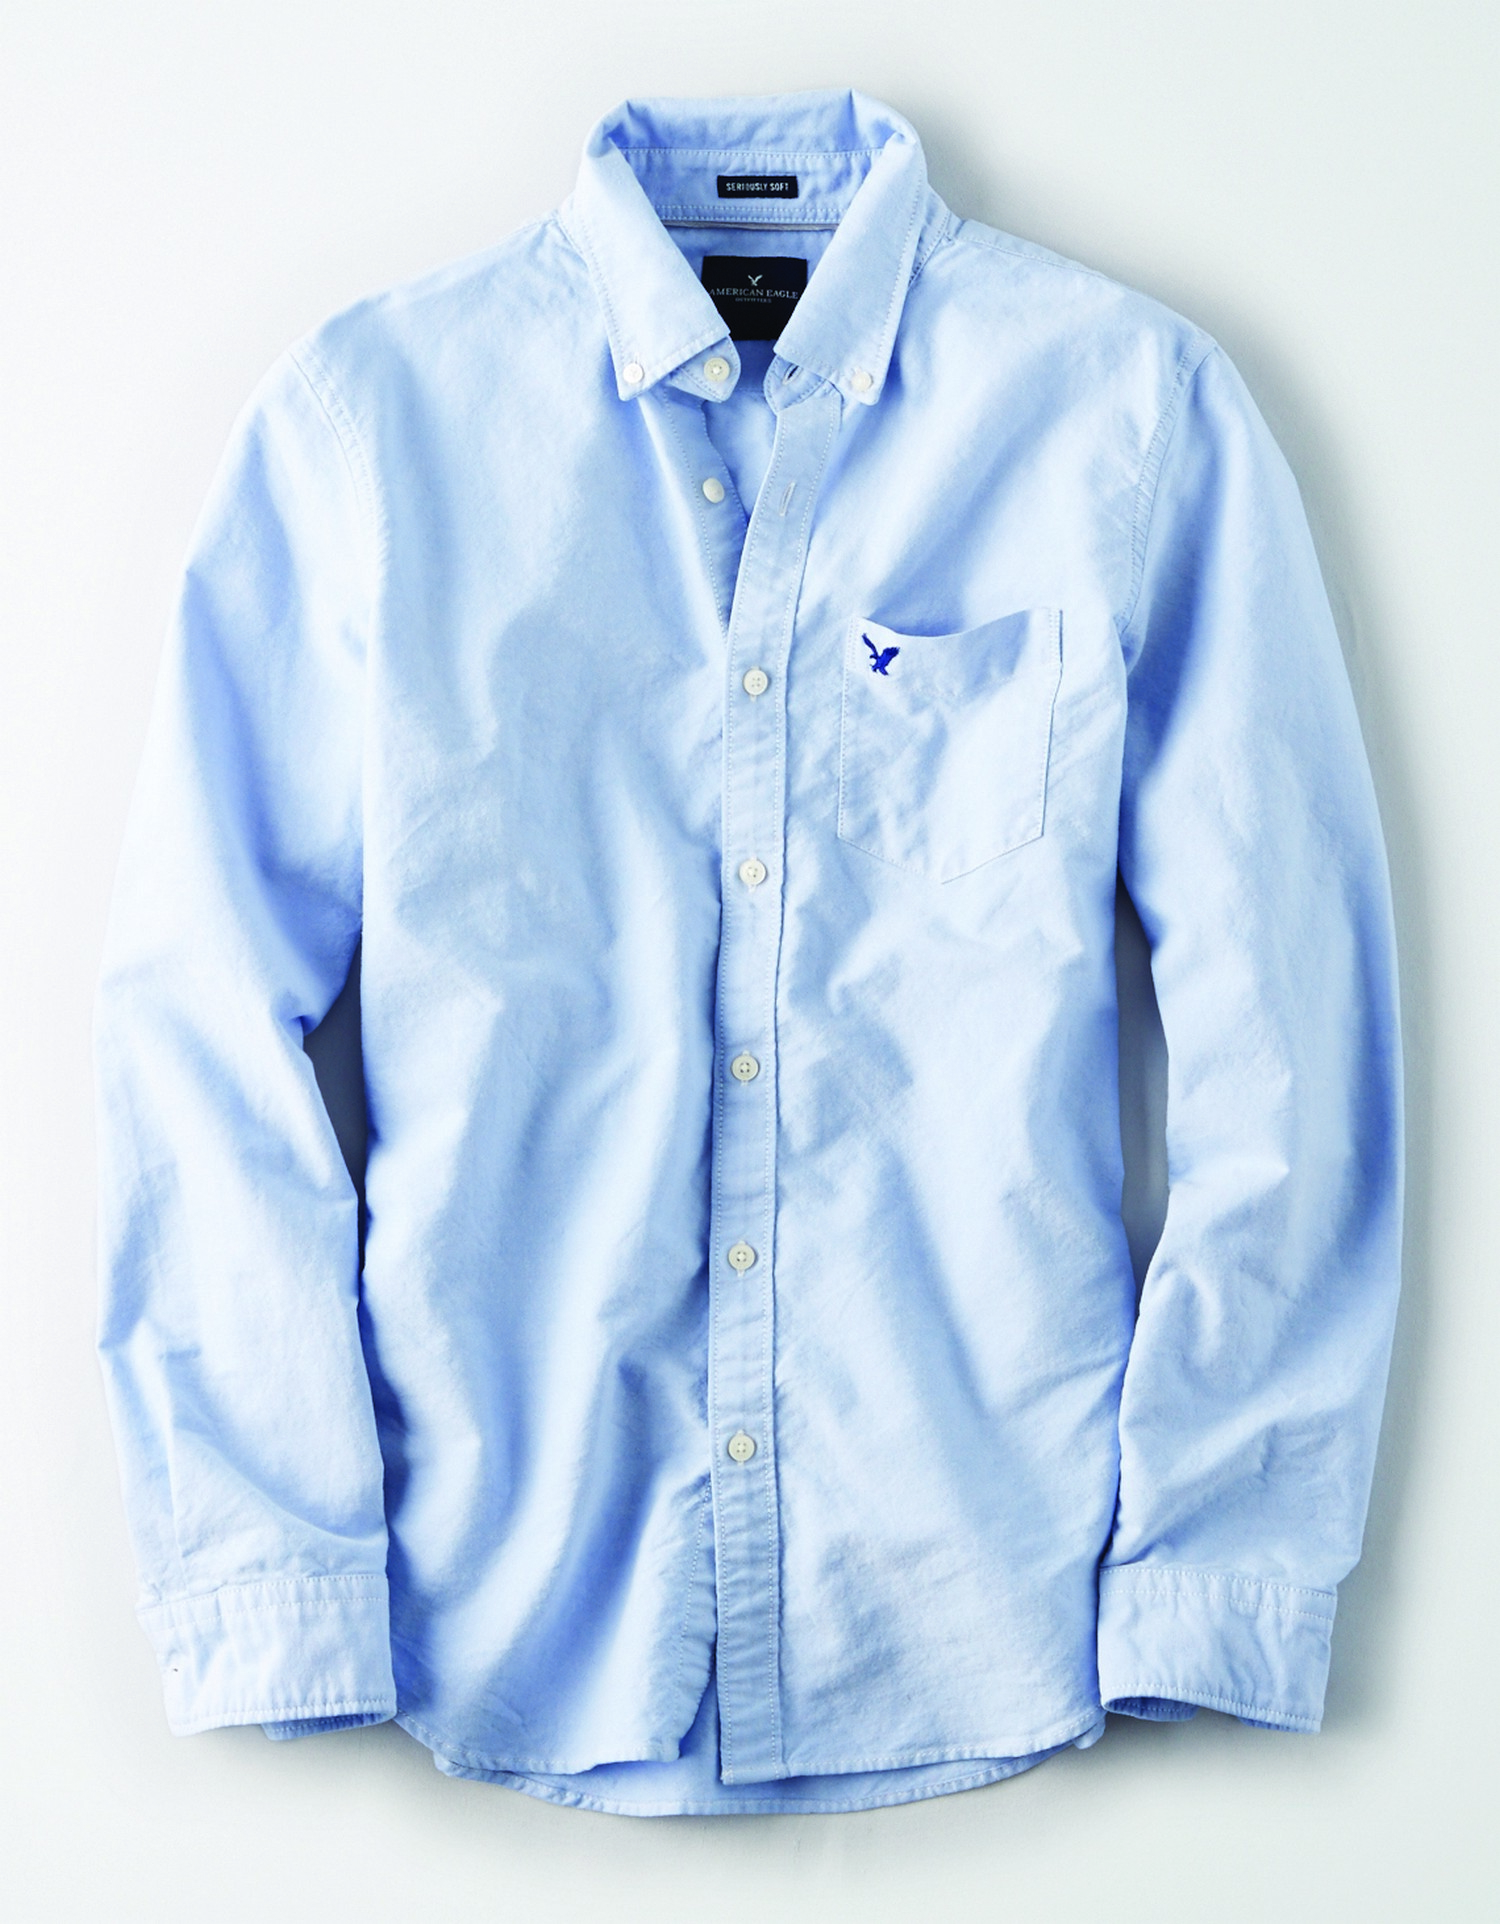 AE  INTL- M - Apparel - YD SOLID OXFORD  - BLue - Left chest pocket - button down - cream buttons - button collar BG